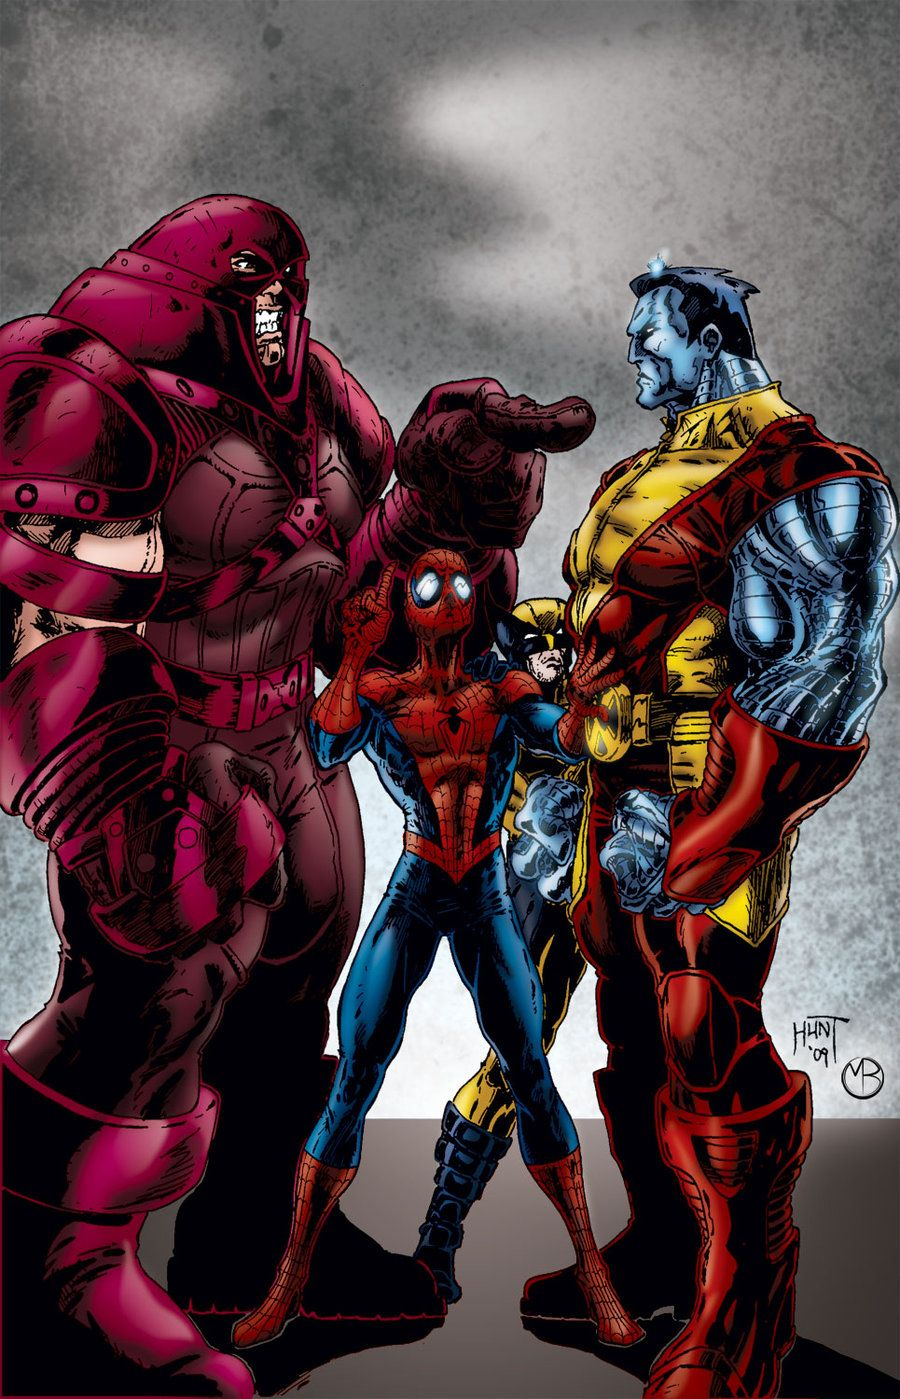 Juggernaut vs Colossus Not a great place for Spidey or Logan to